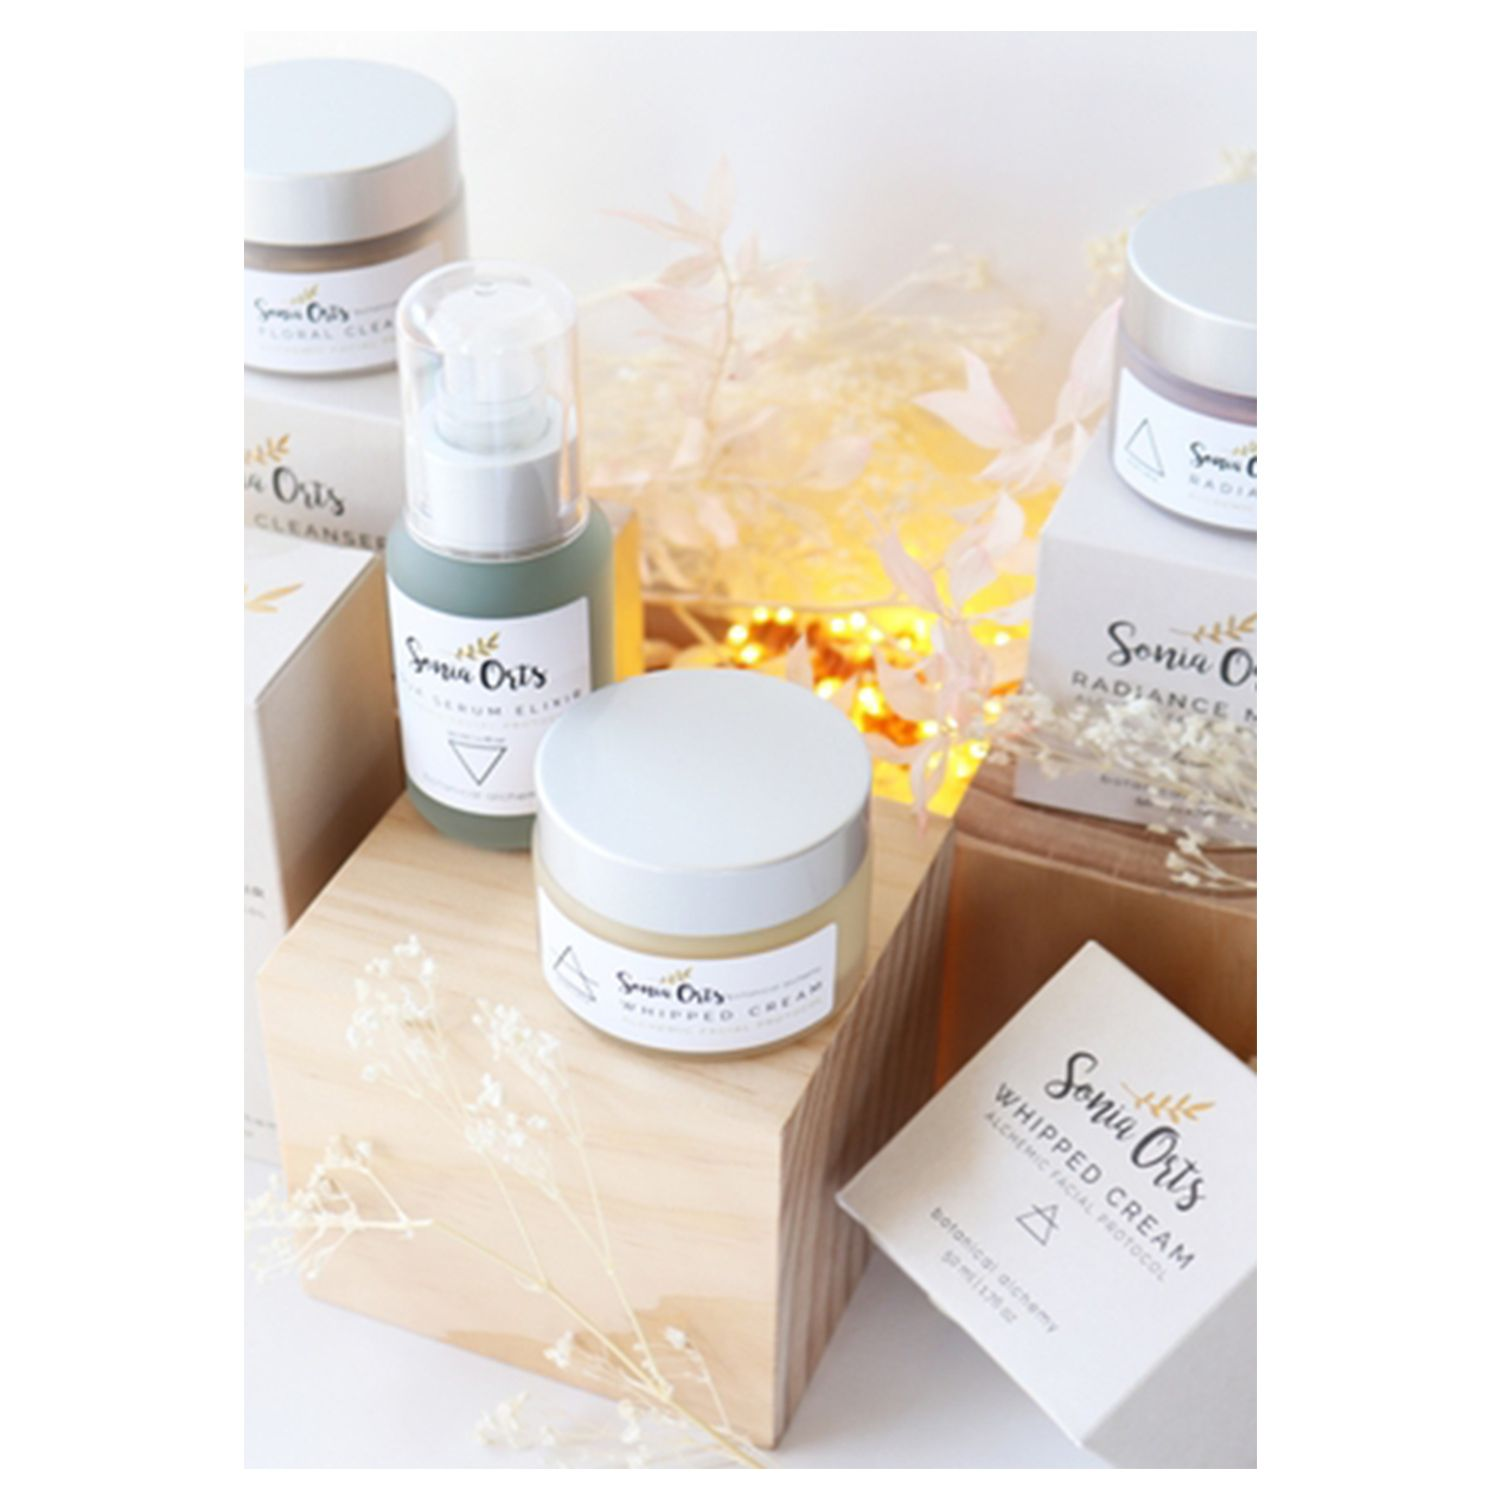 No Better Way To Start The Week Than A New Fresh Skin Let S Make Your Bathroom Your Personal Spa Because In 2020 Skin Care Range Lush Cosmetics Organic Skin Care